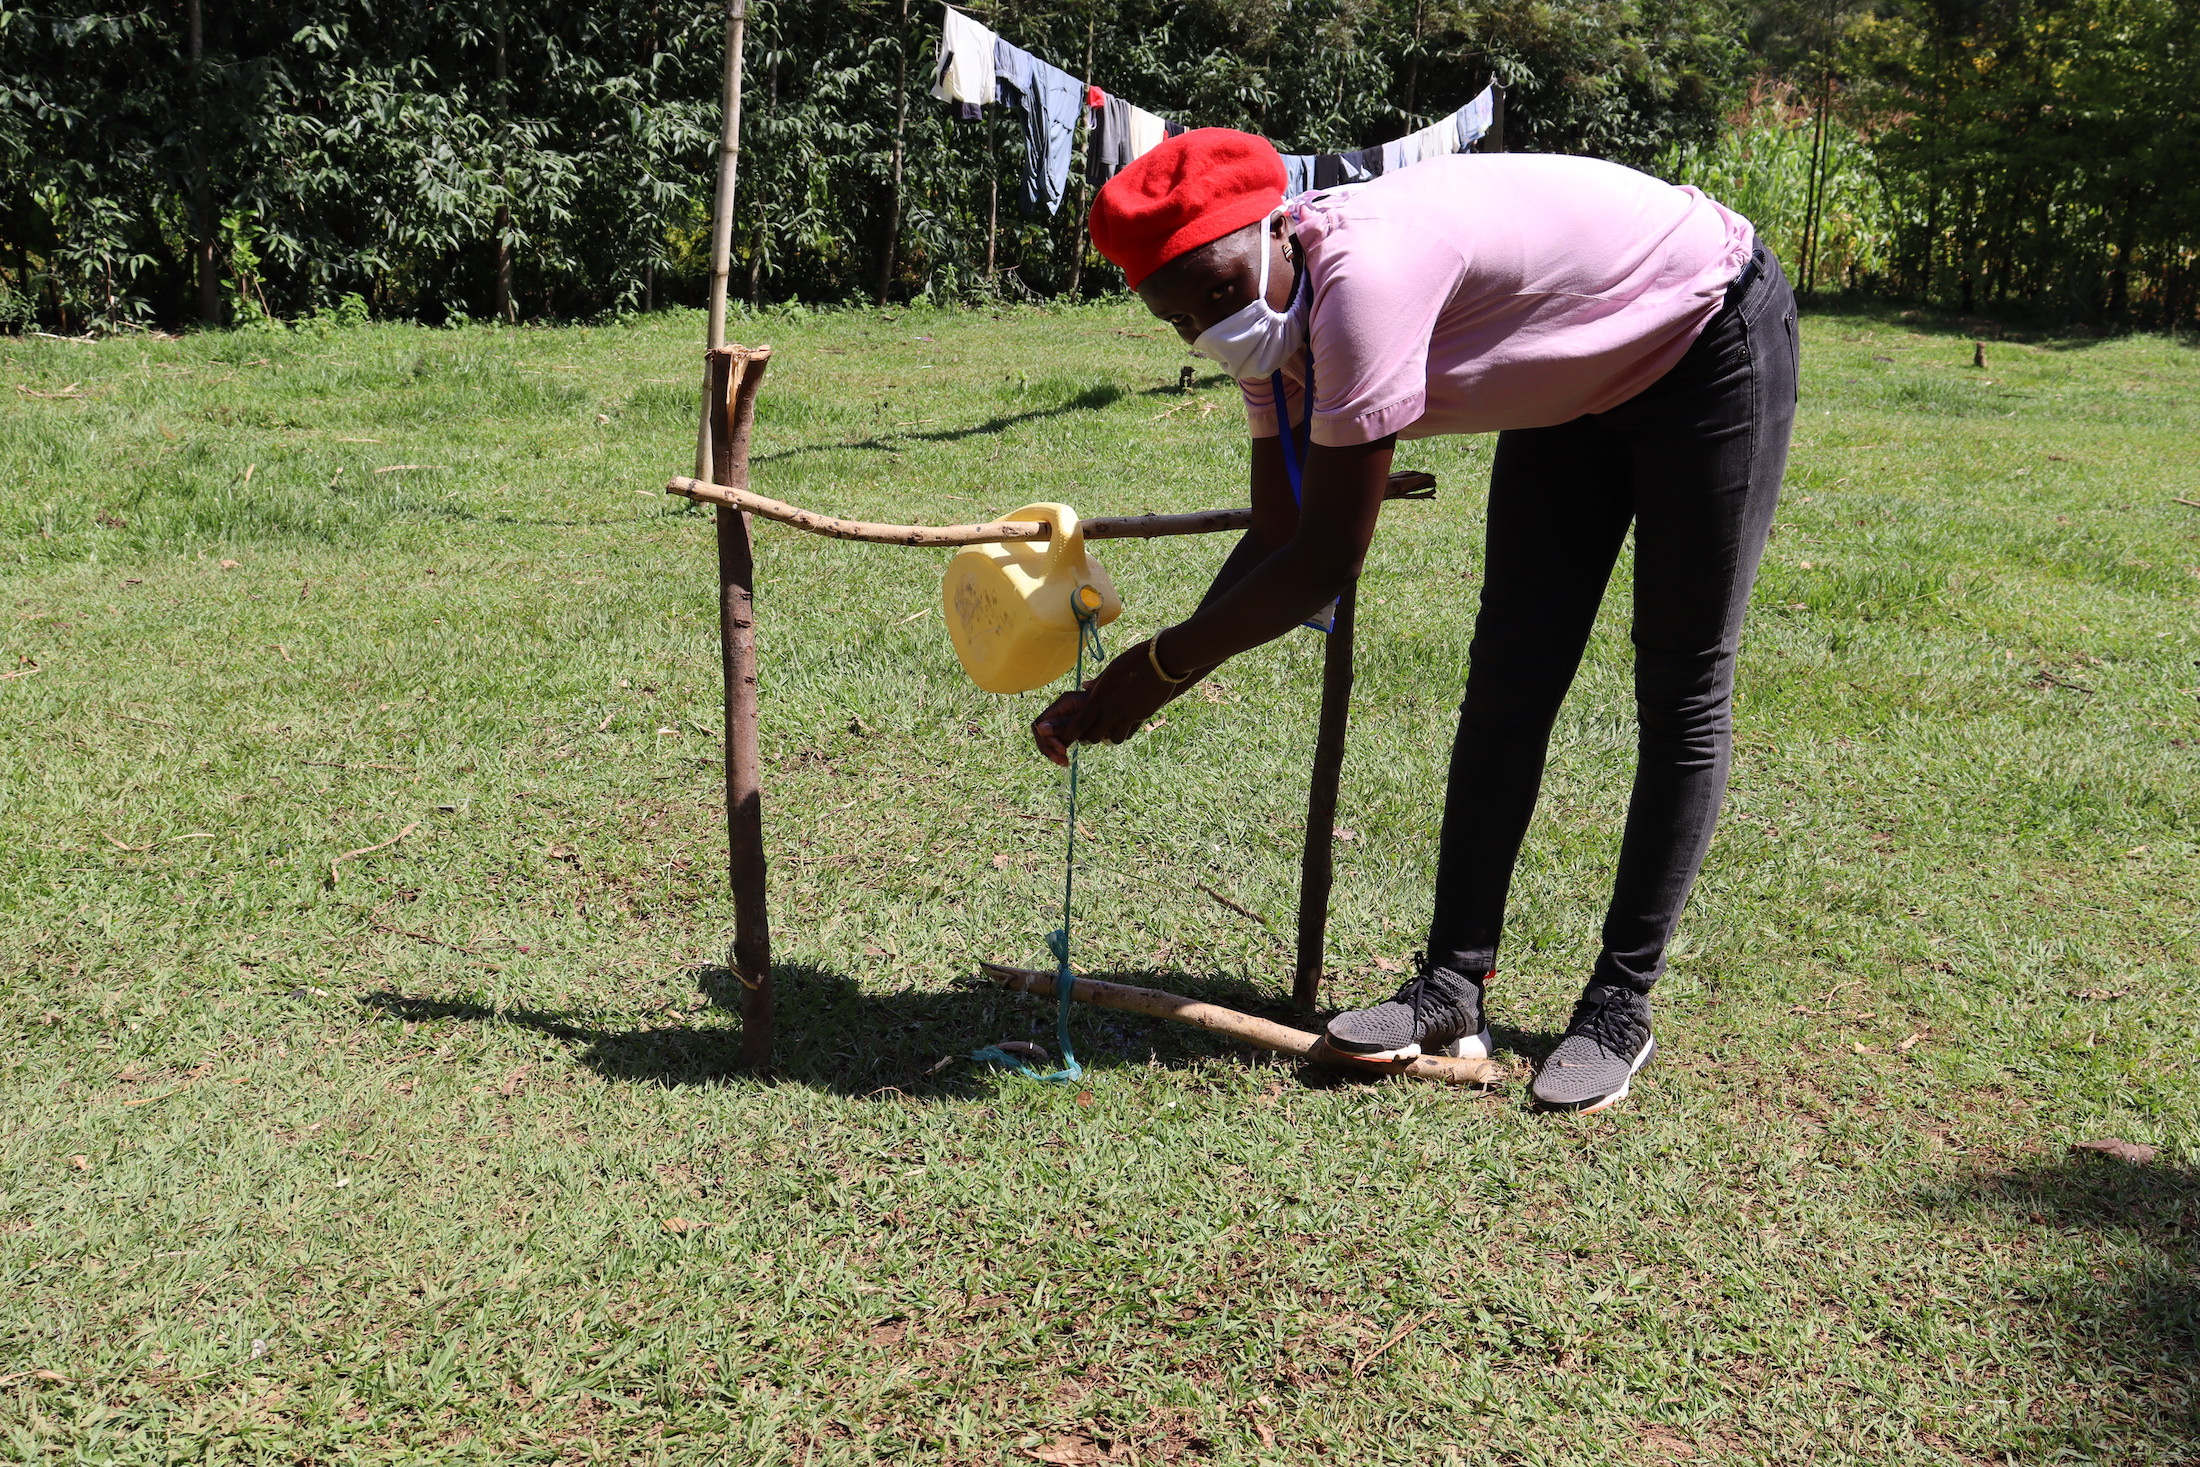 The Water Project : covid19-kenya18109-demonstration-on-using-the-installed-handwashing-station